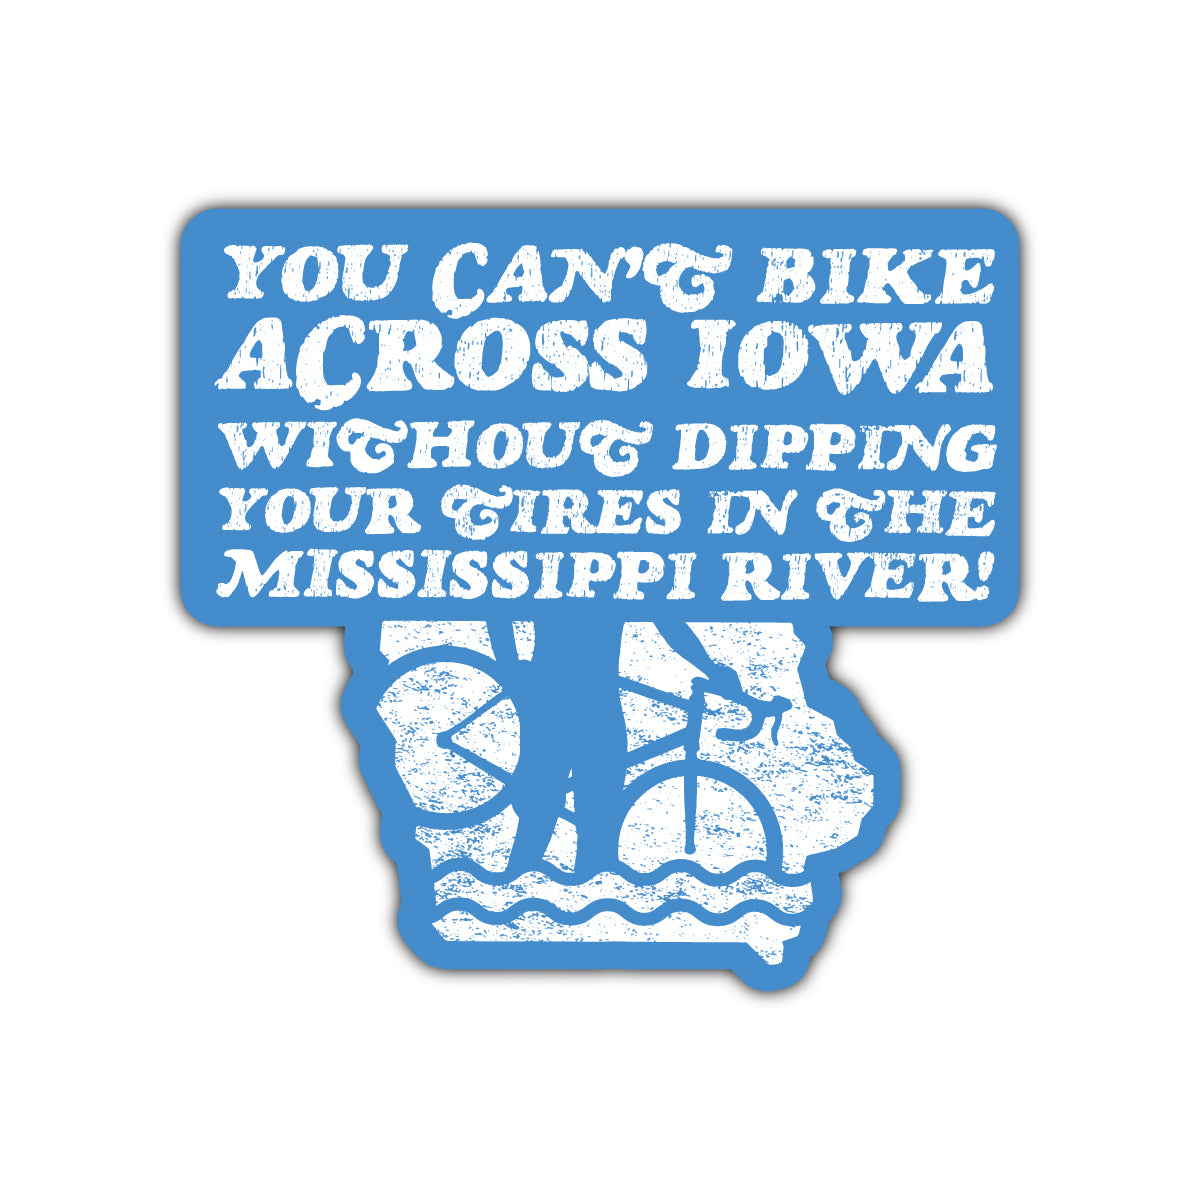 Dip Your Tires in the Mississippi